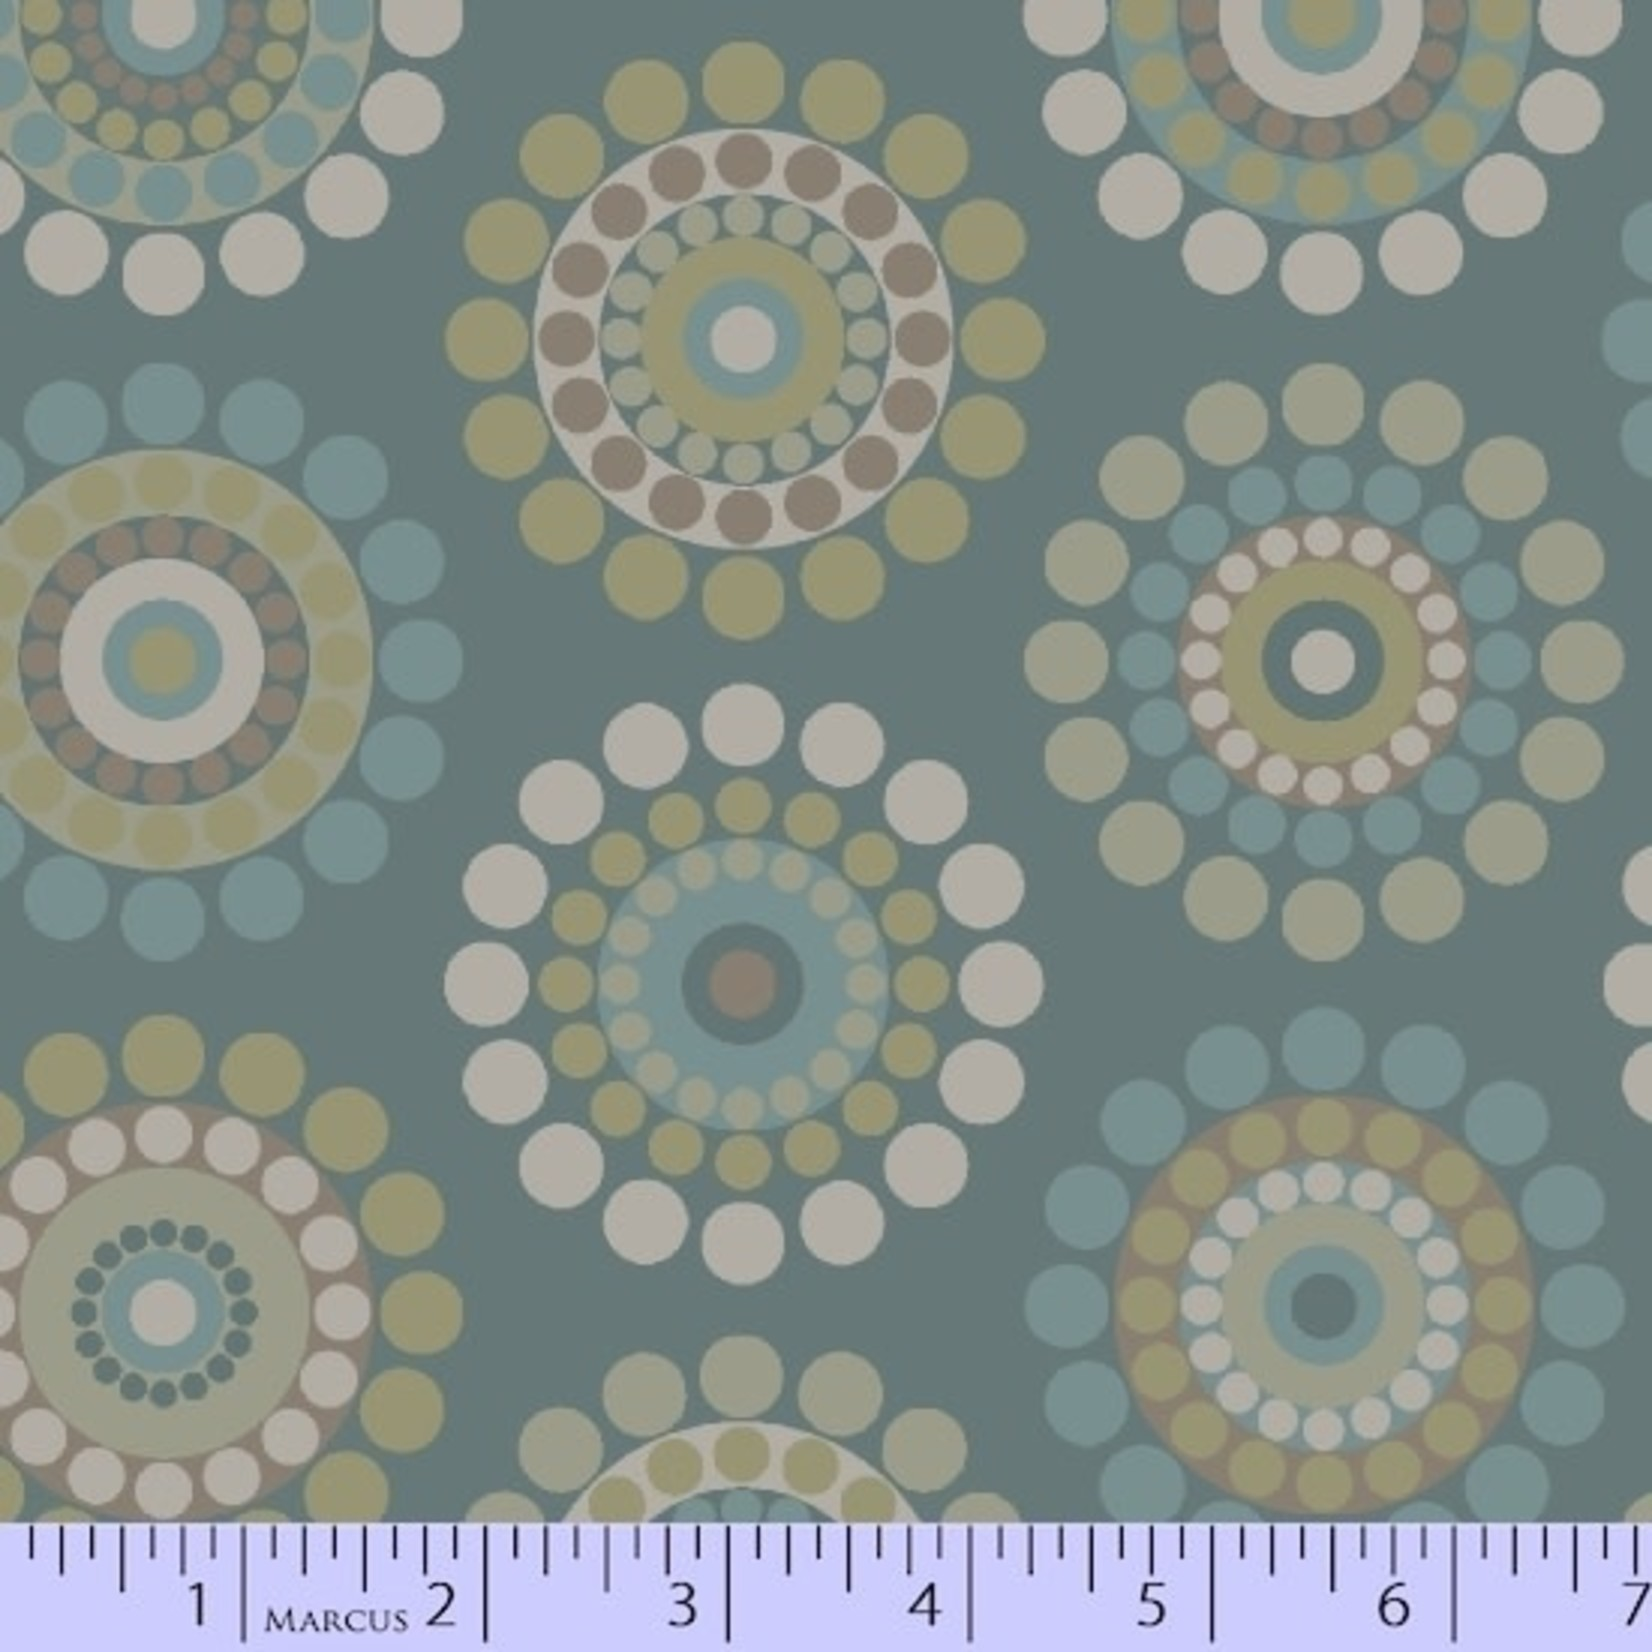 Marcus Fabrics In The Round - Dotted Rings - Blue